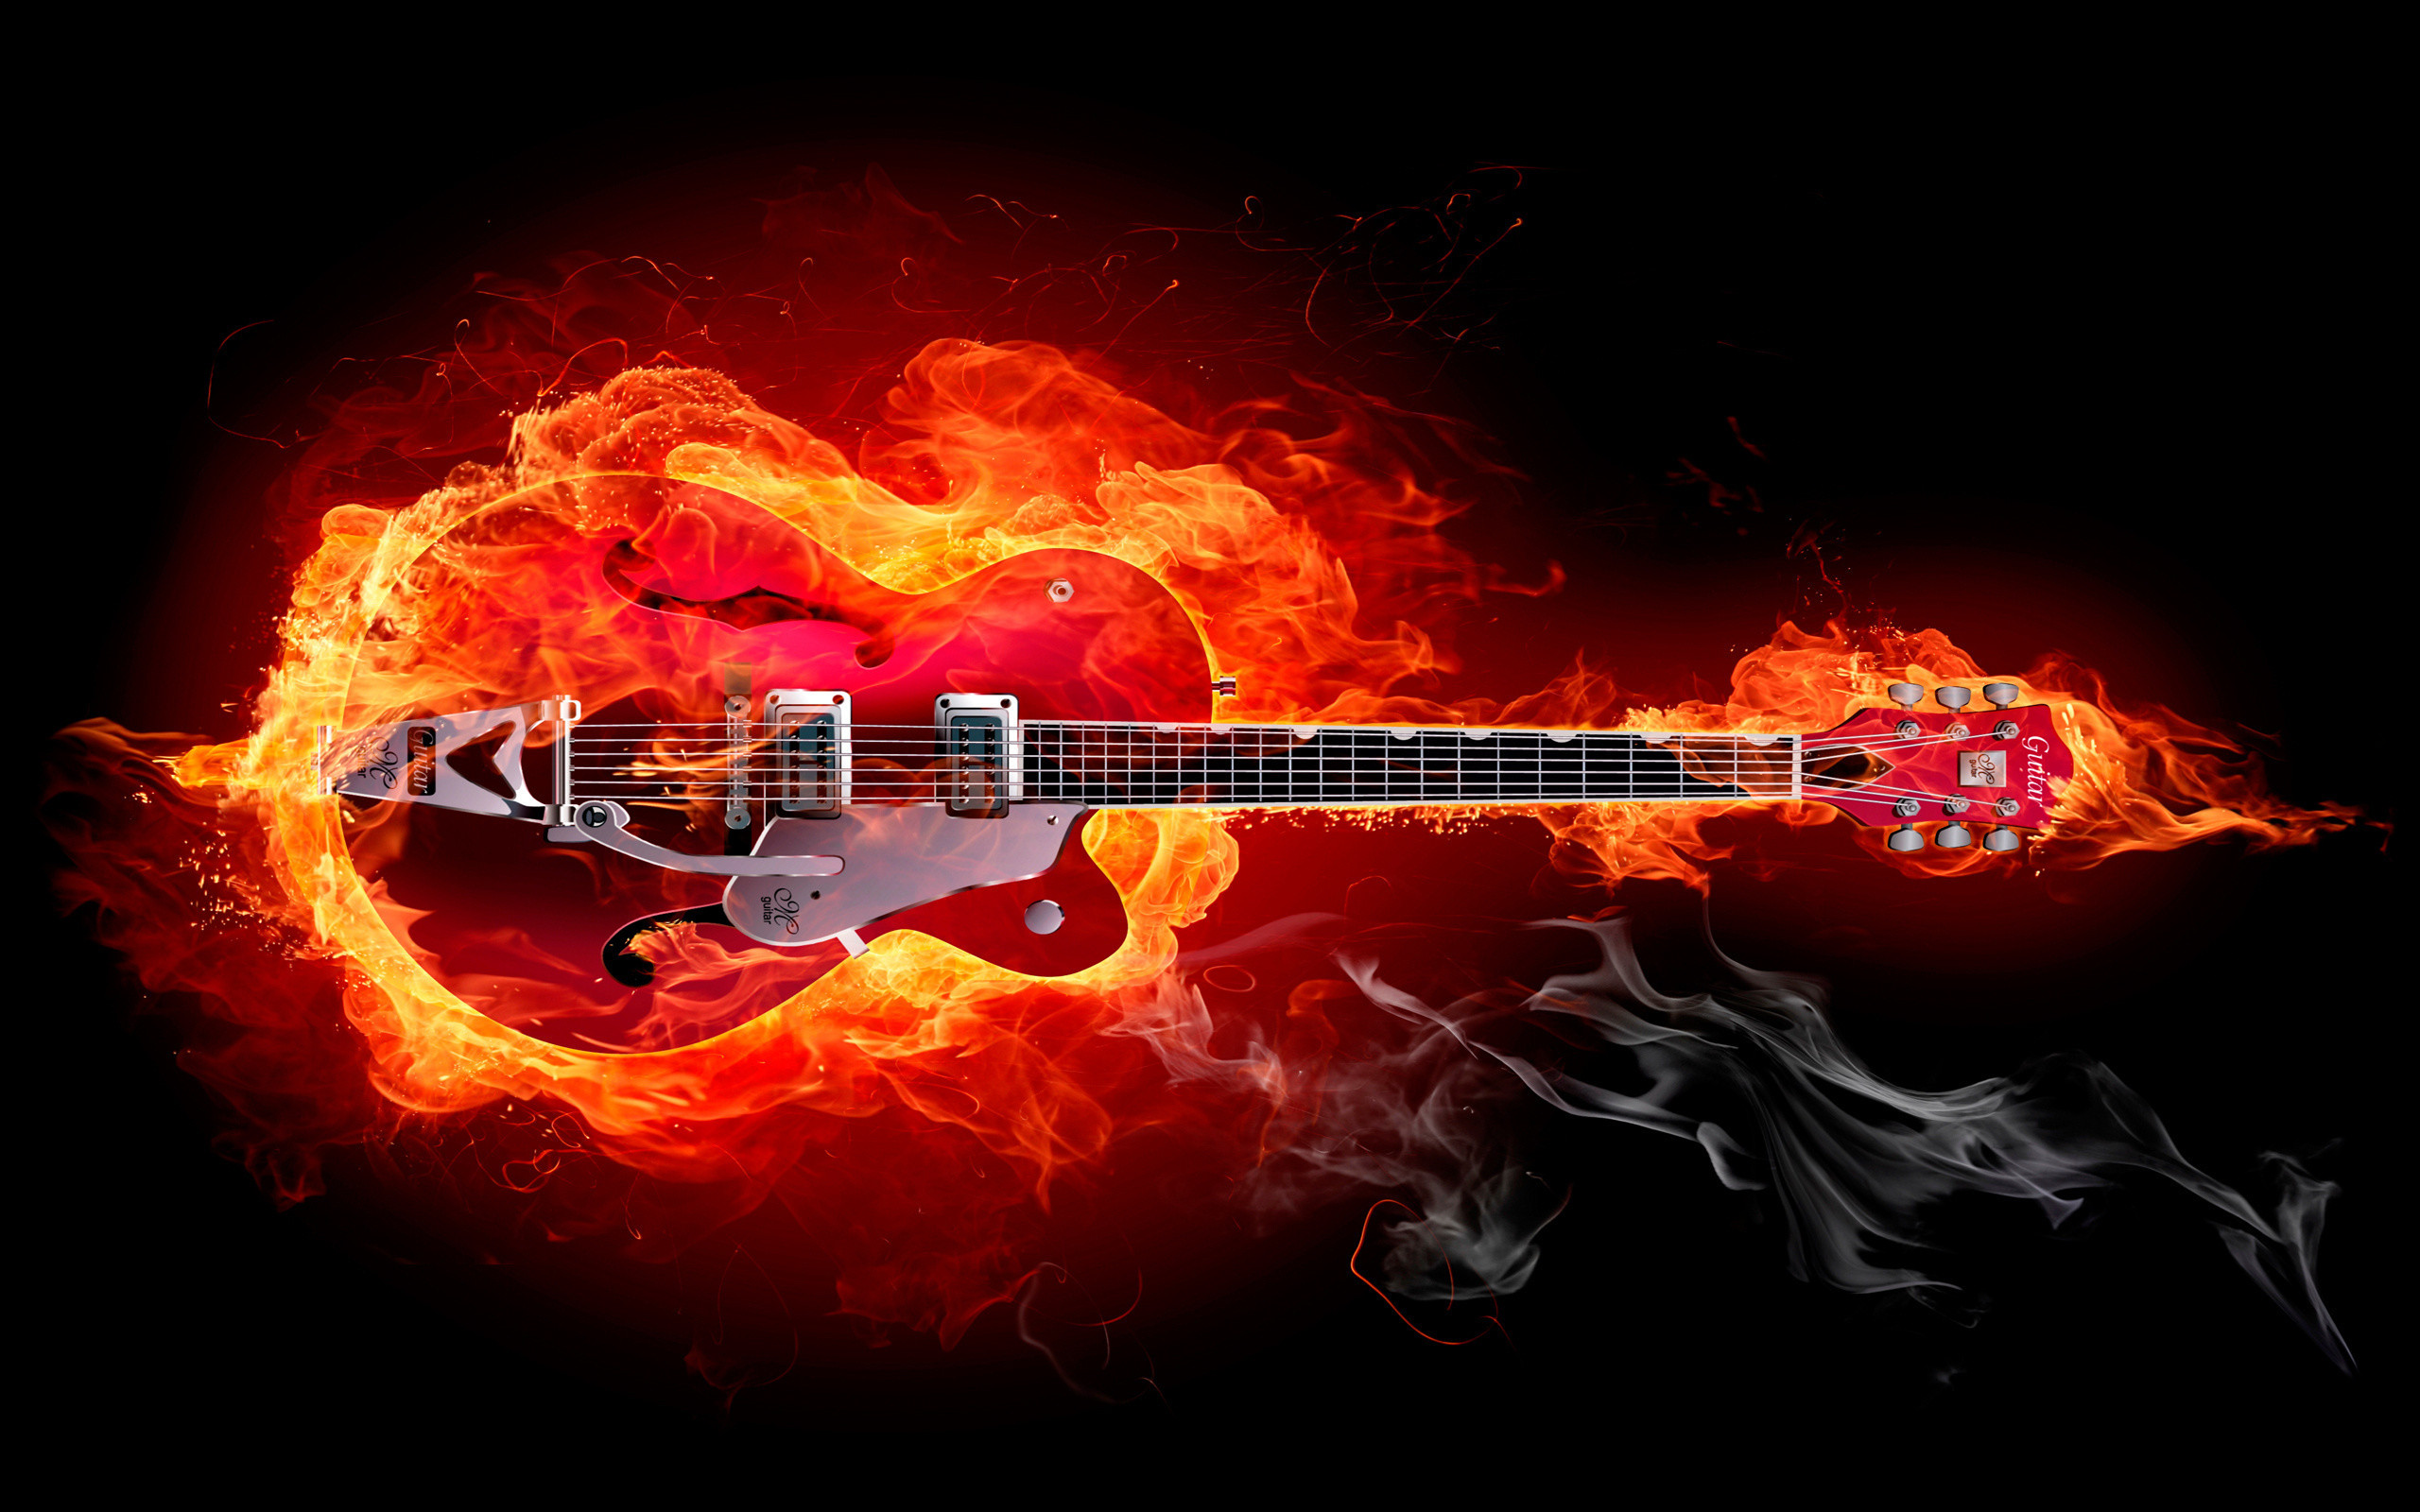 Res: 2560x1600, fire, guitar, smoke, electric guitar, musical instrument